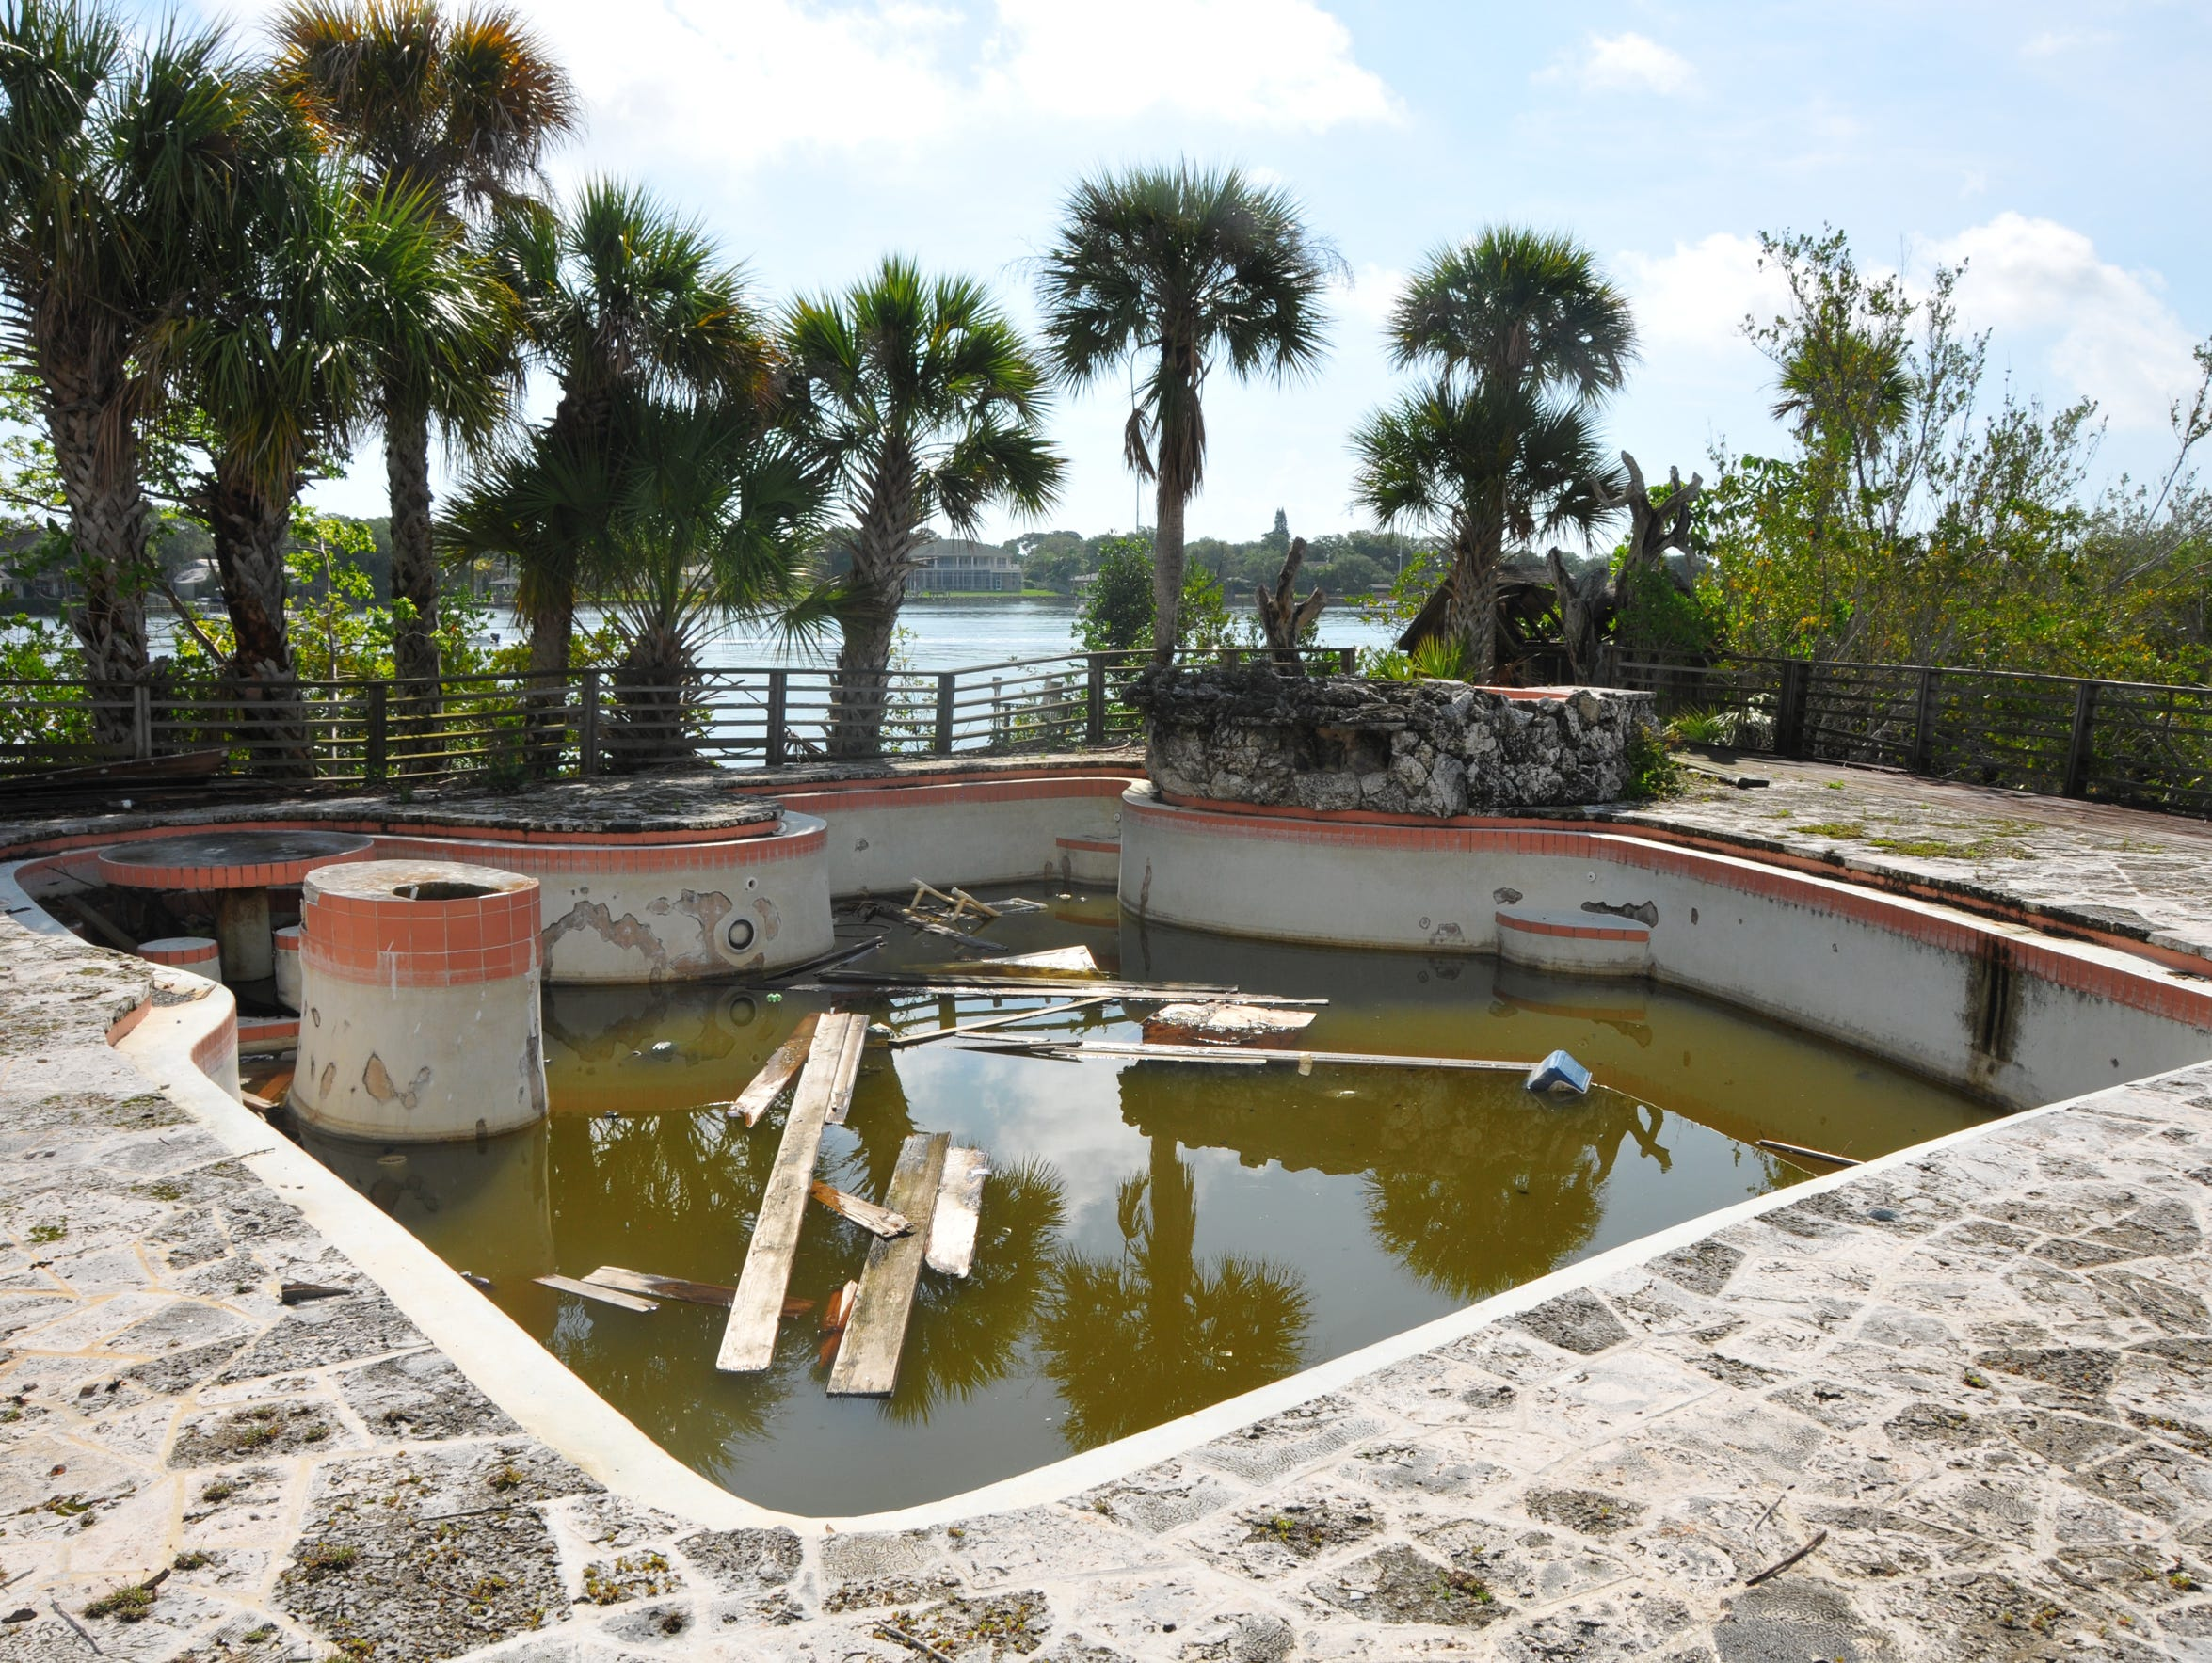 The old pool has a coral deck.